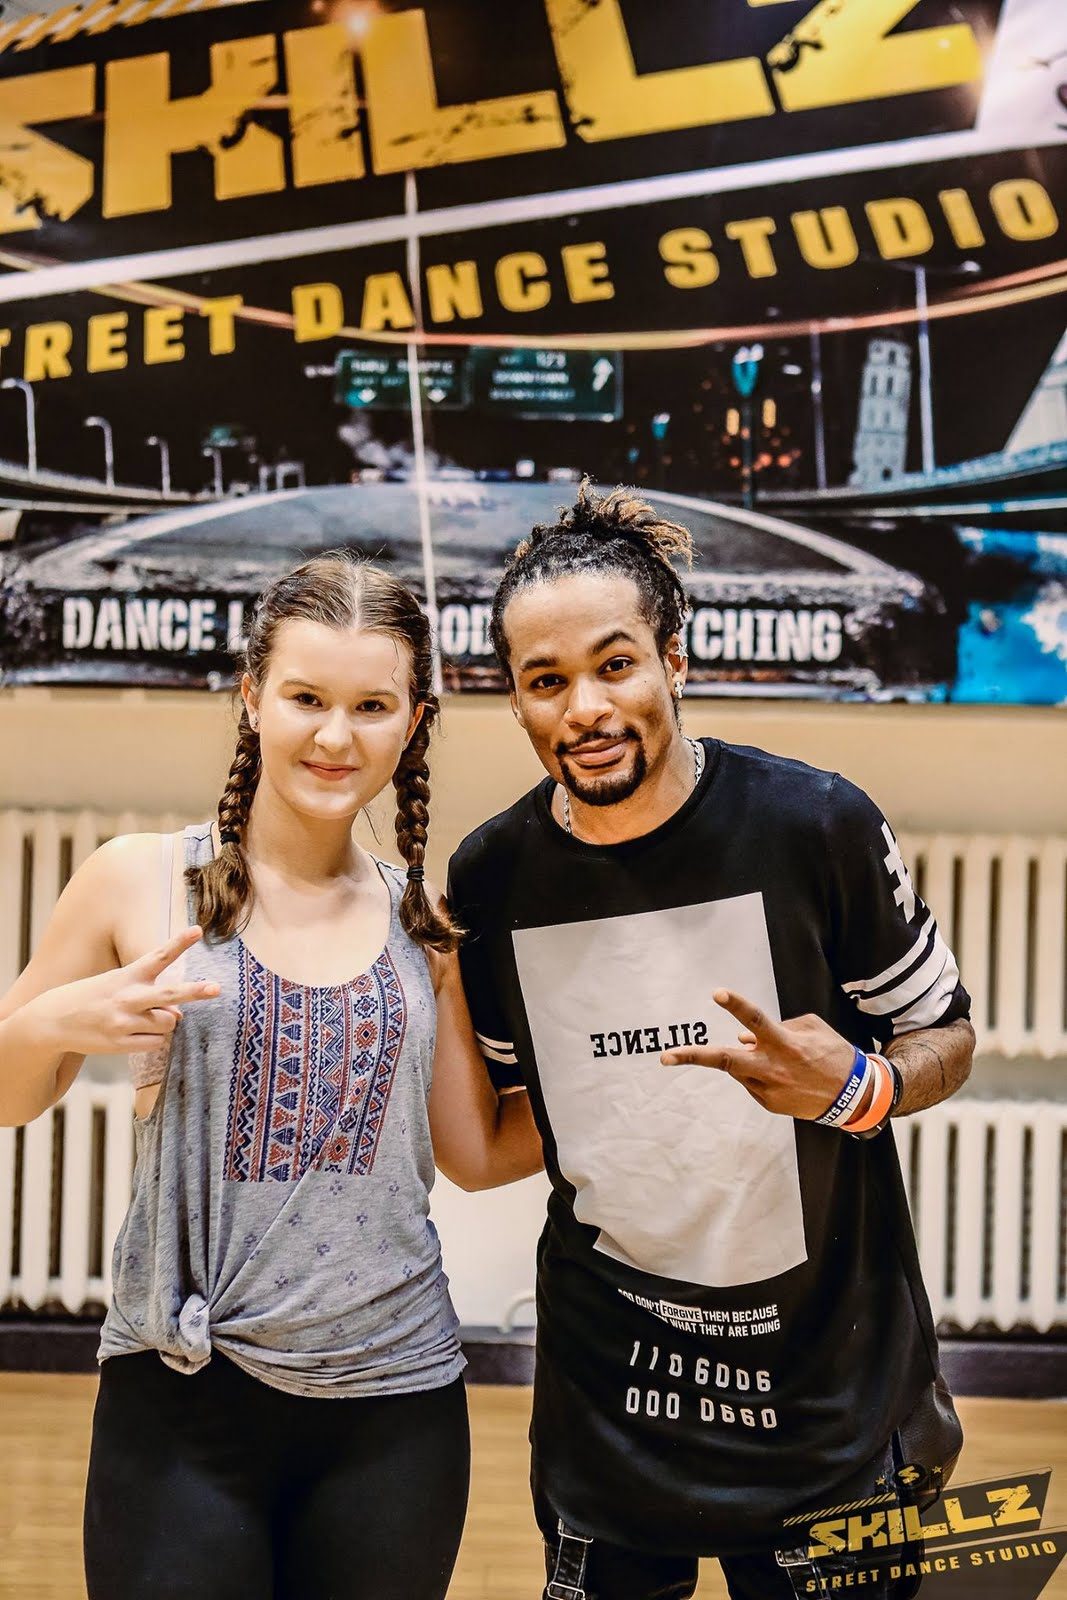 Dancehall workshop with Jiggy (France) - 66.jpg